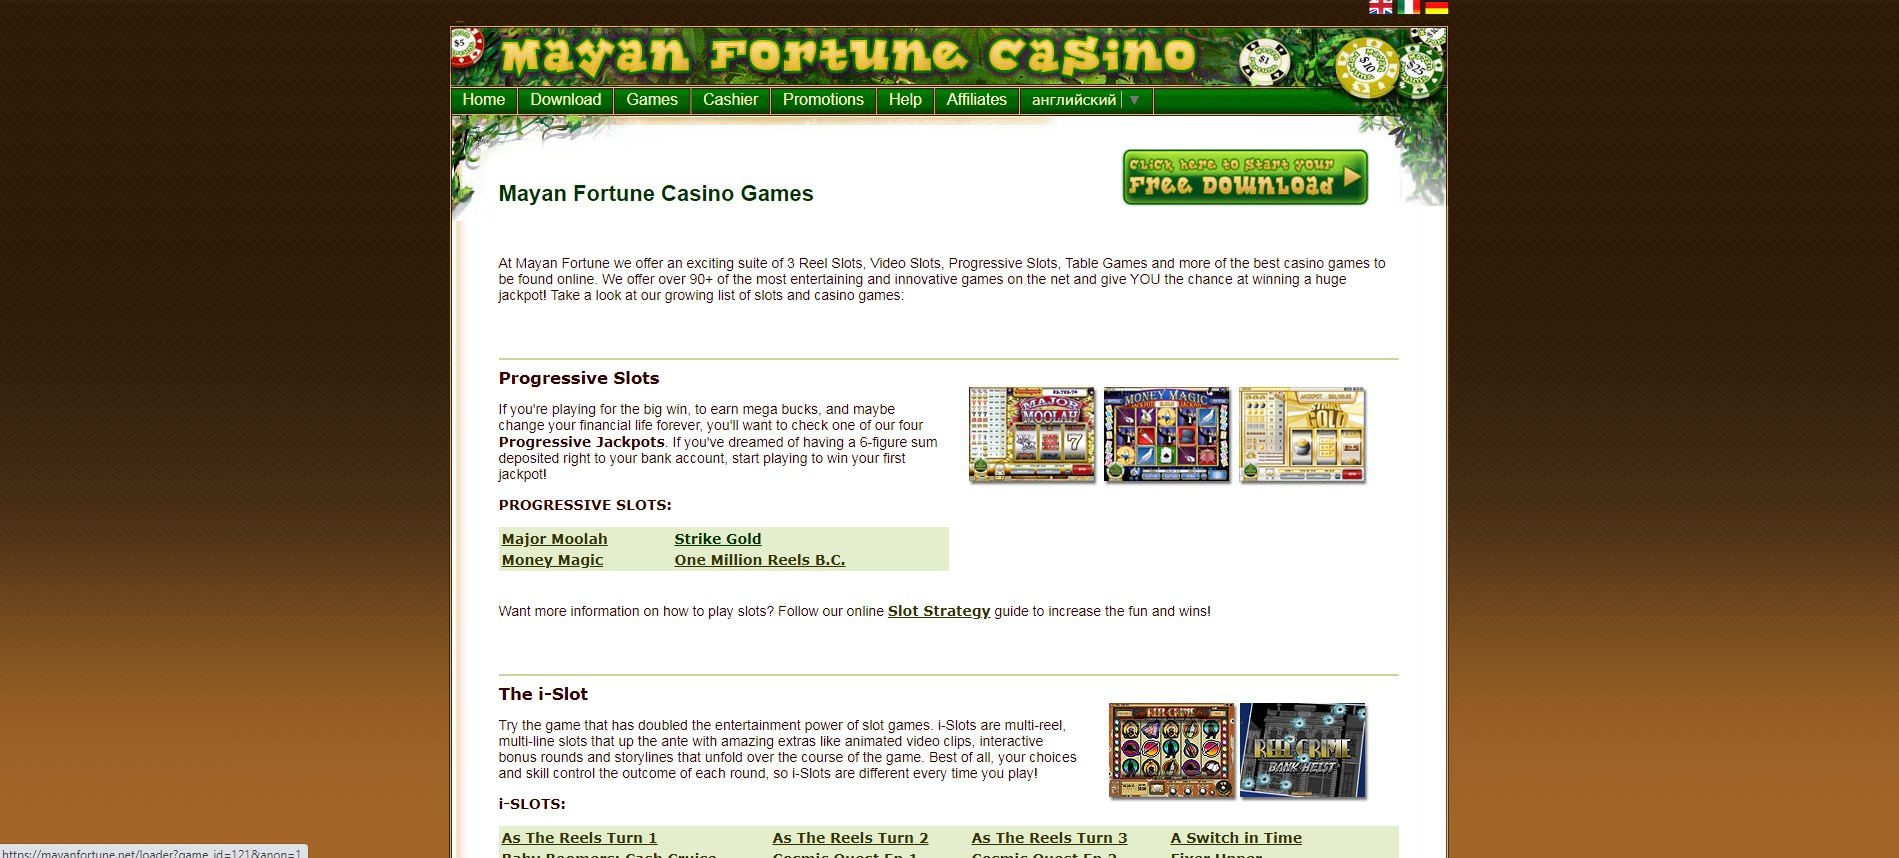 Mayan Fortune Casino Games